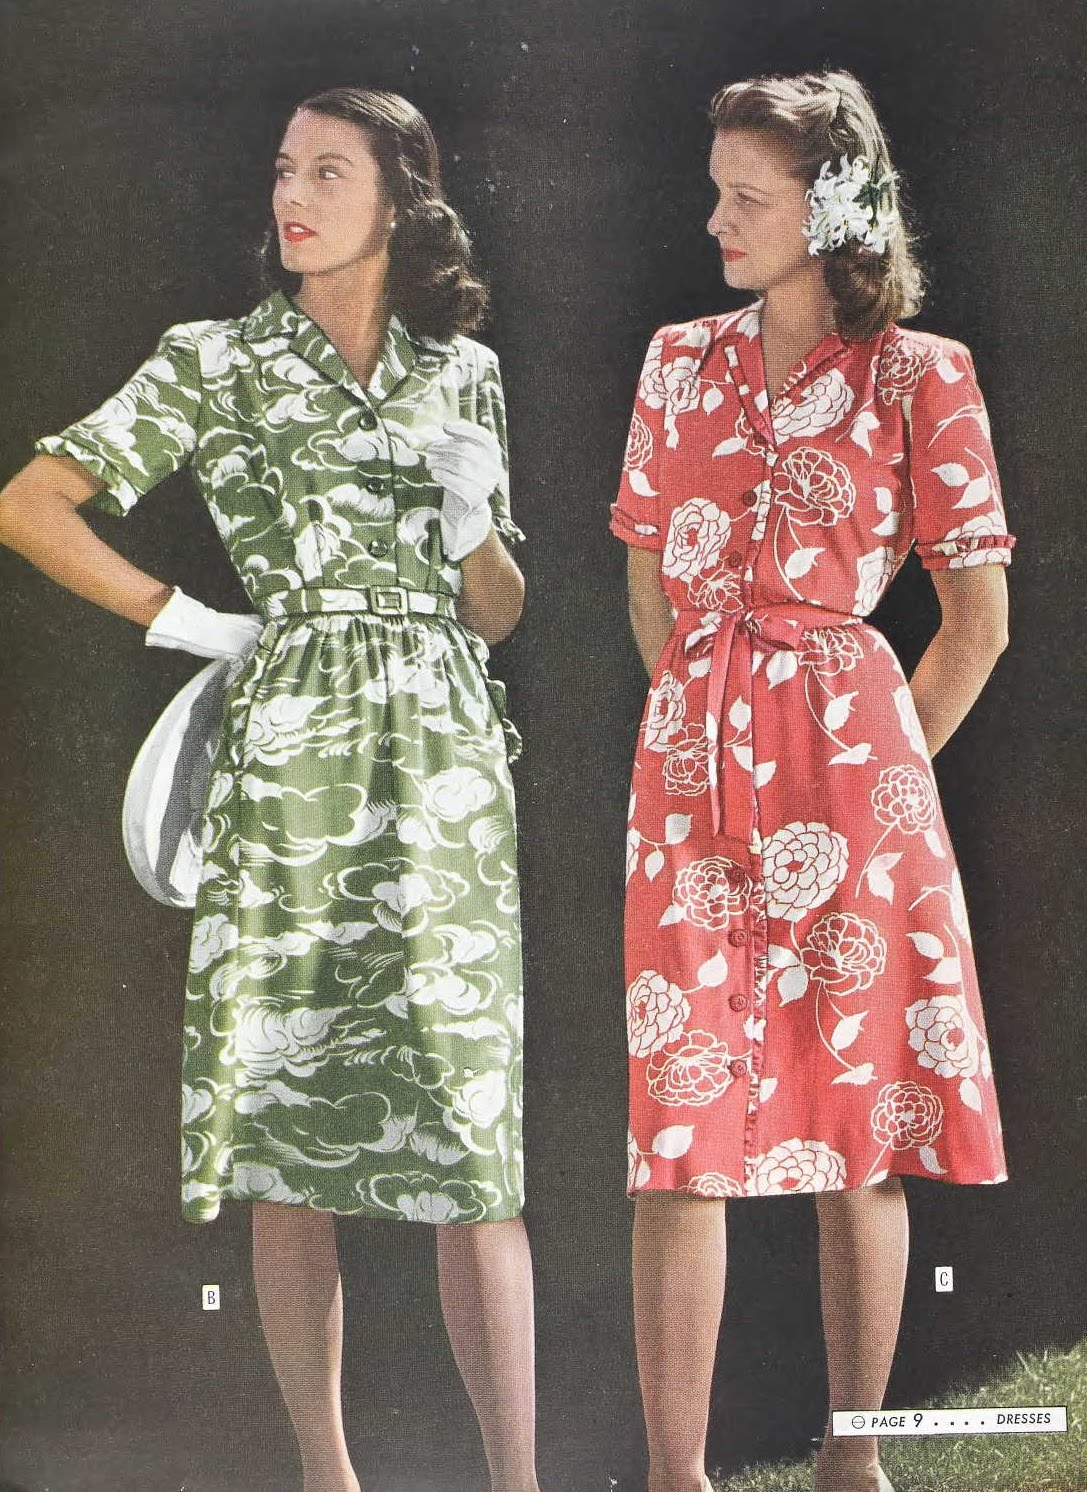 Snapped Garters: 1944 Fashions IN COLOUR